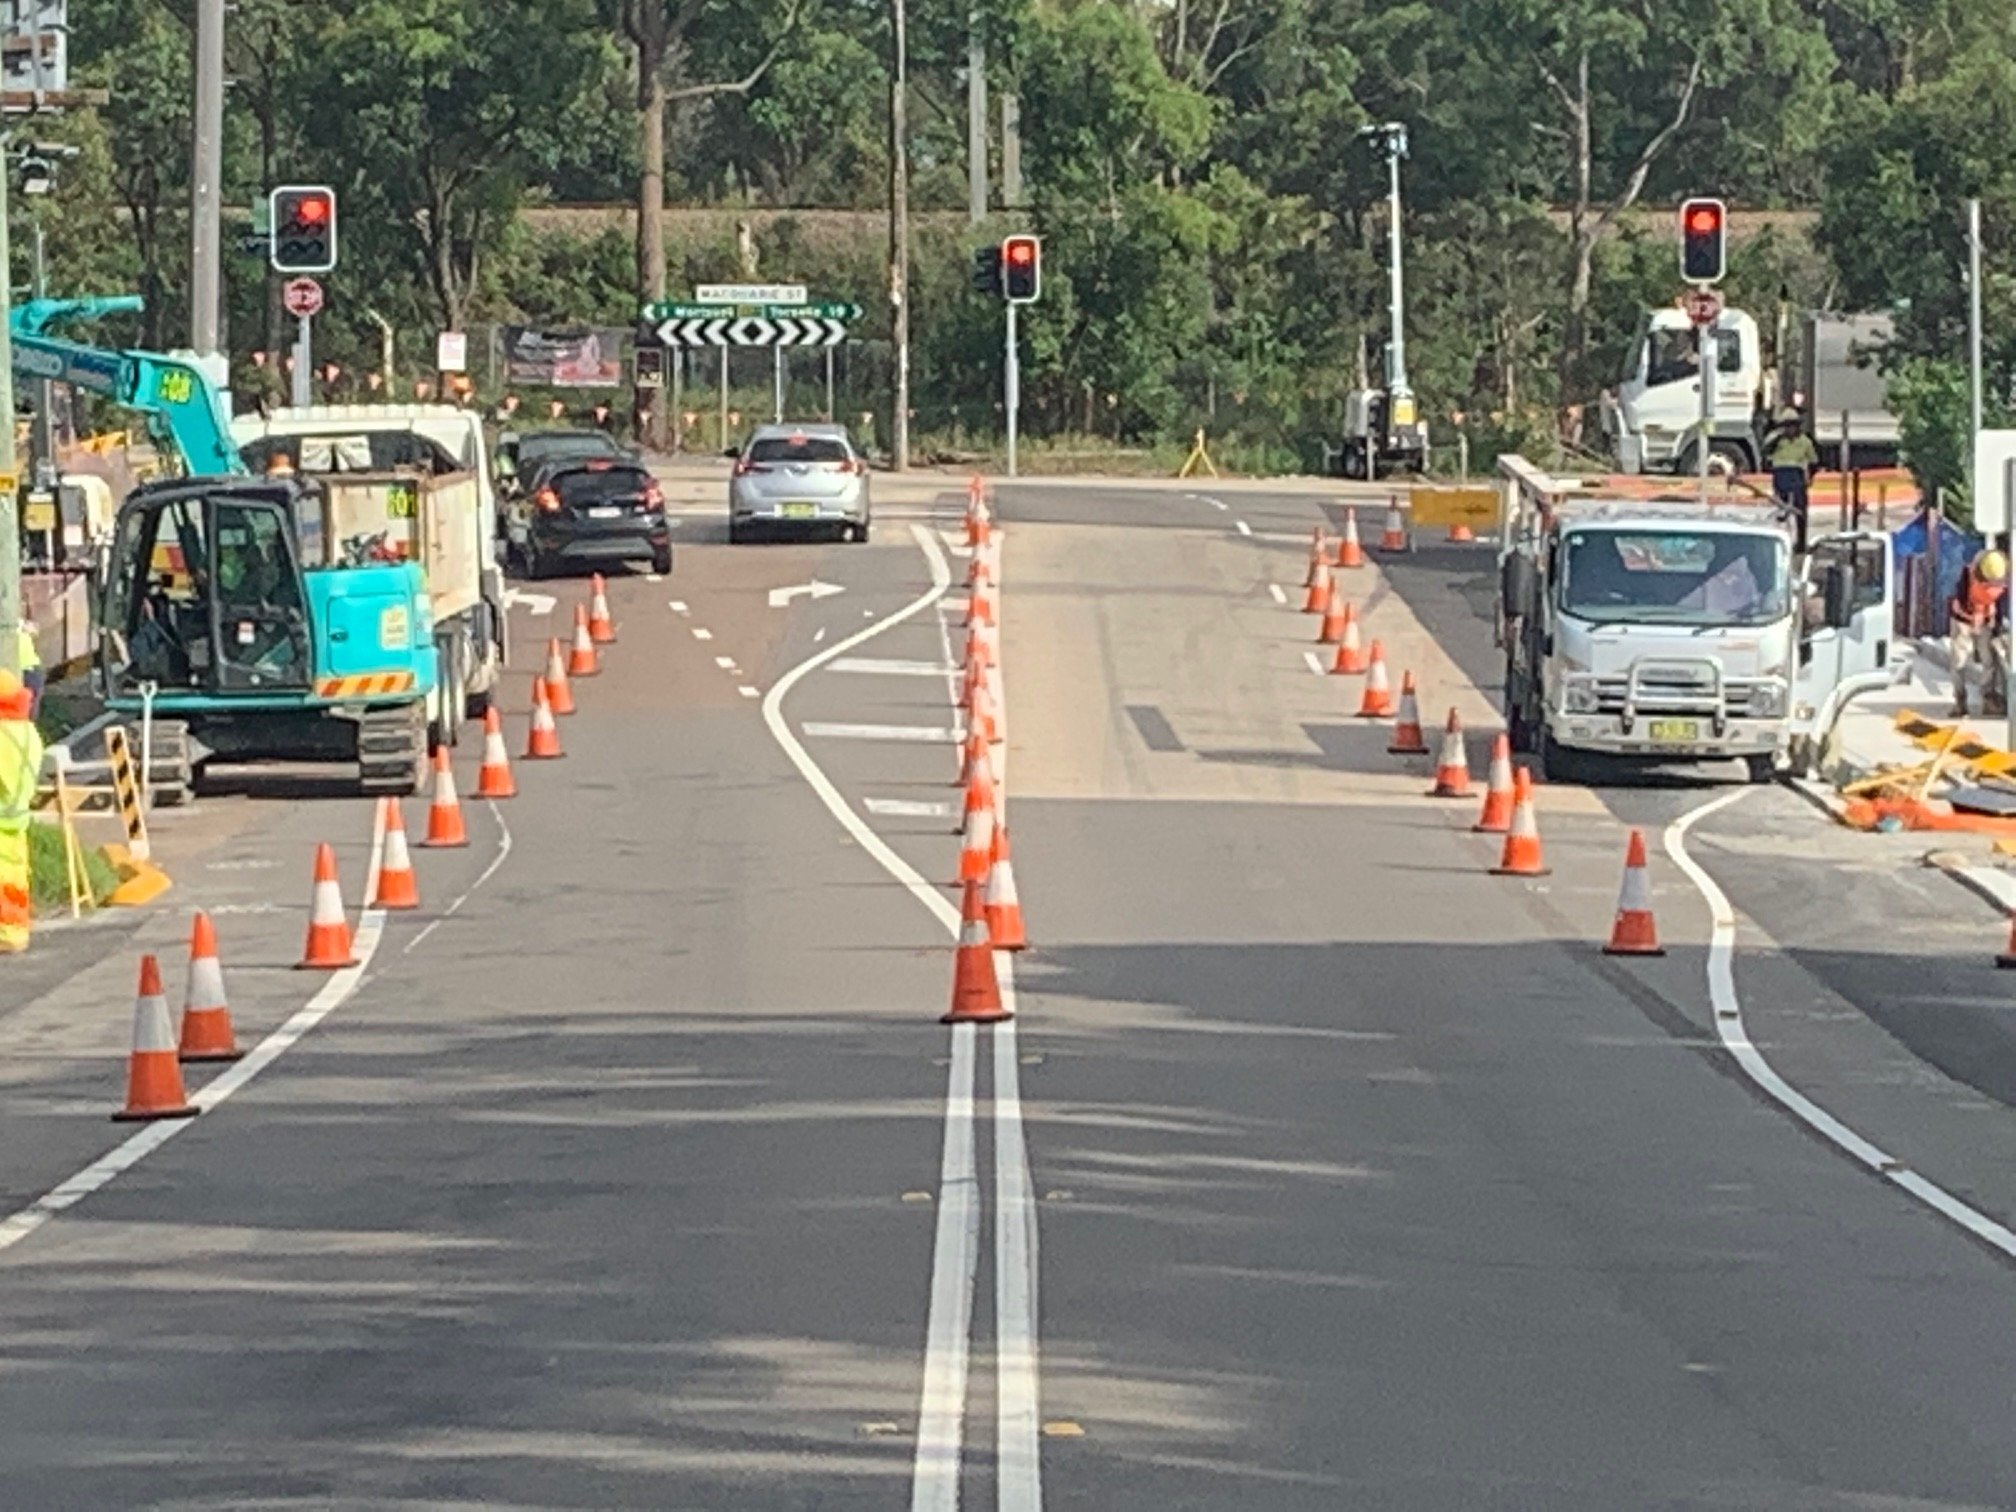 Work on the Fishery Point Road intersection at Morisset is back in full swing, but there's a couple of issues which I've raised with the RMS about fixing. Firstly, I believe the merge lane heading into Fishery Point Road is way too short